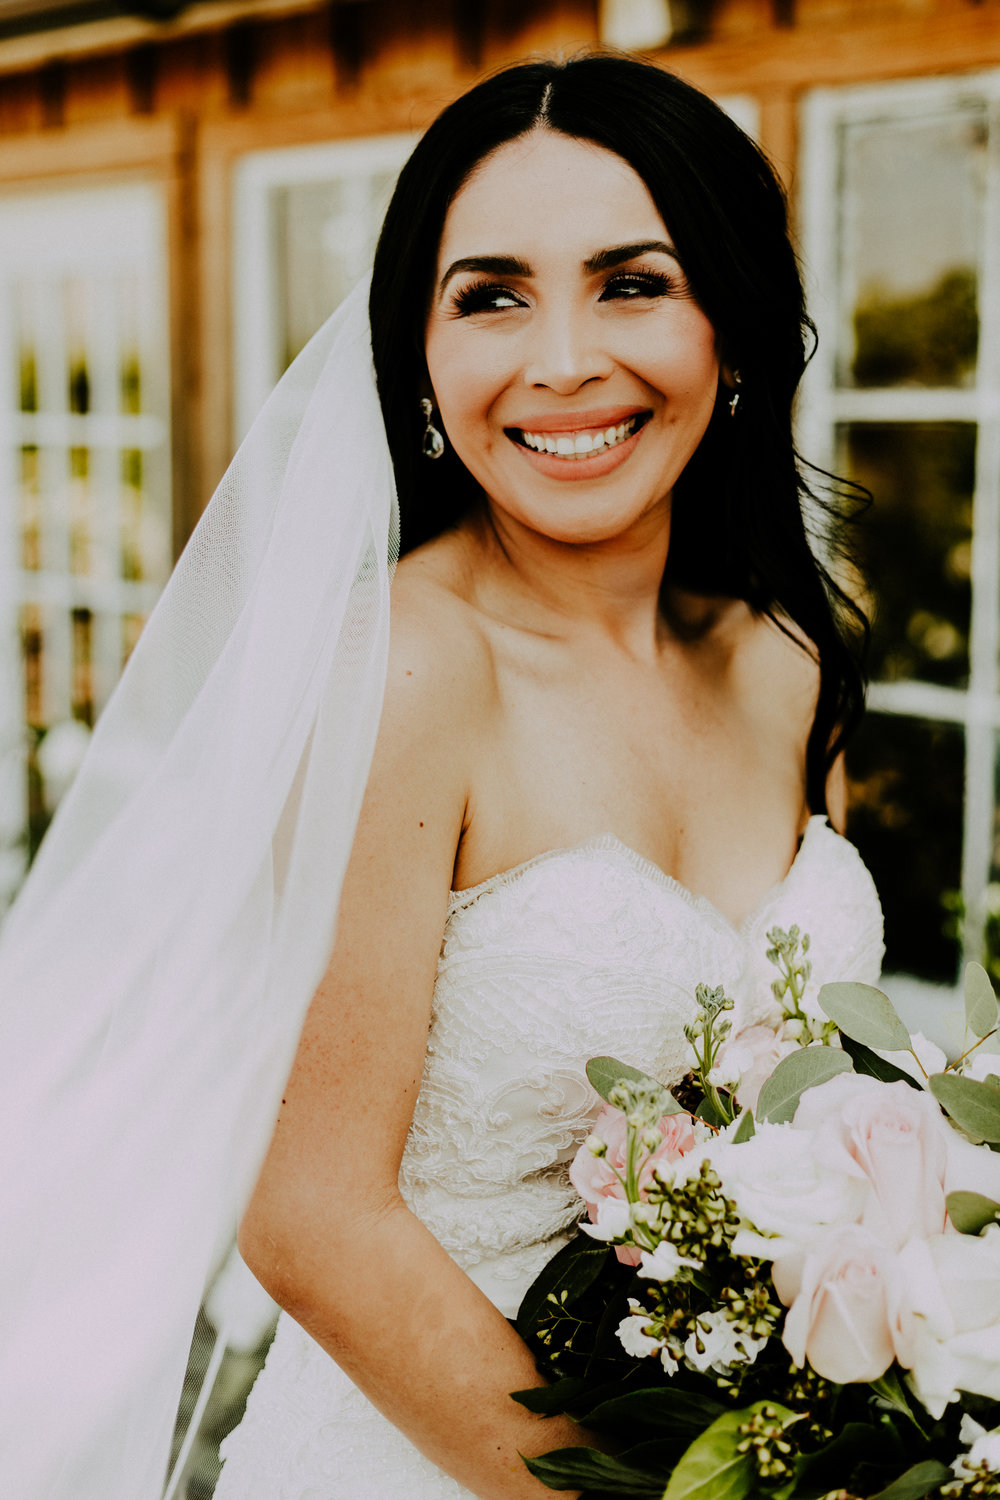 Bride smiling with veil and bouquet of beautiful flowers